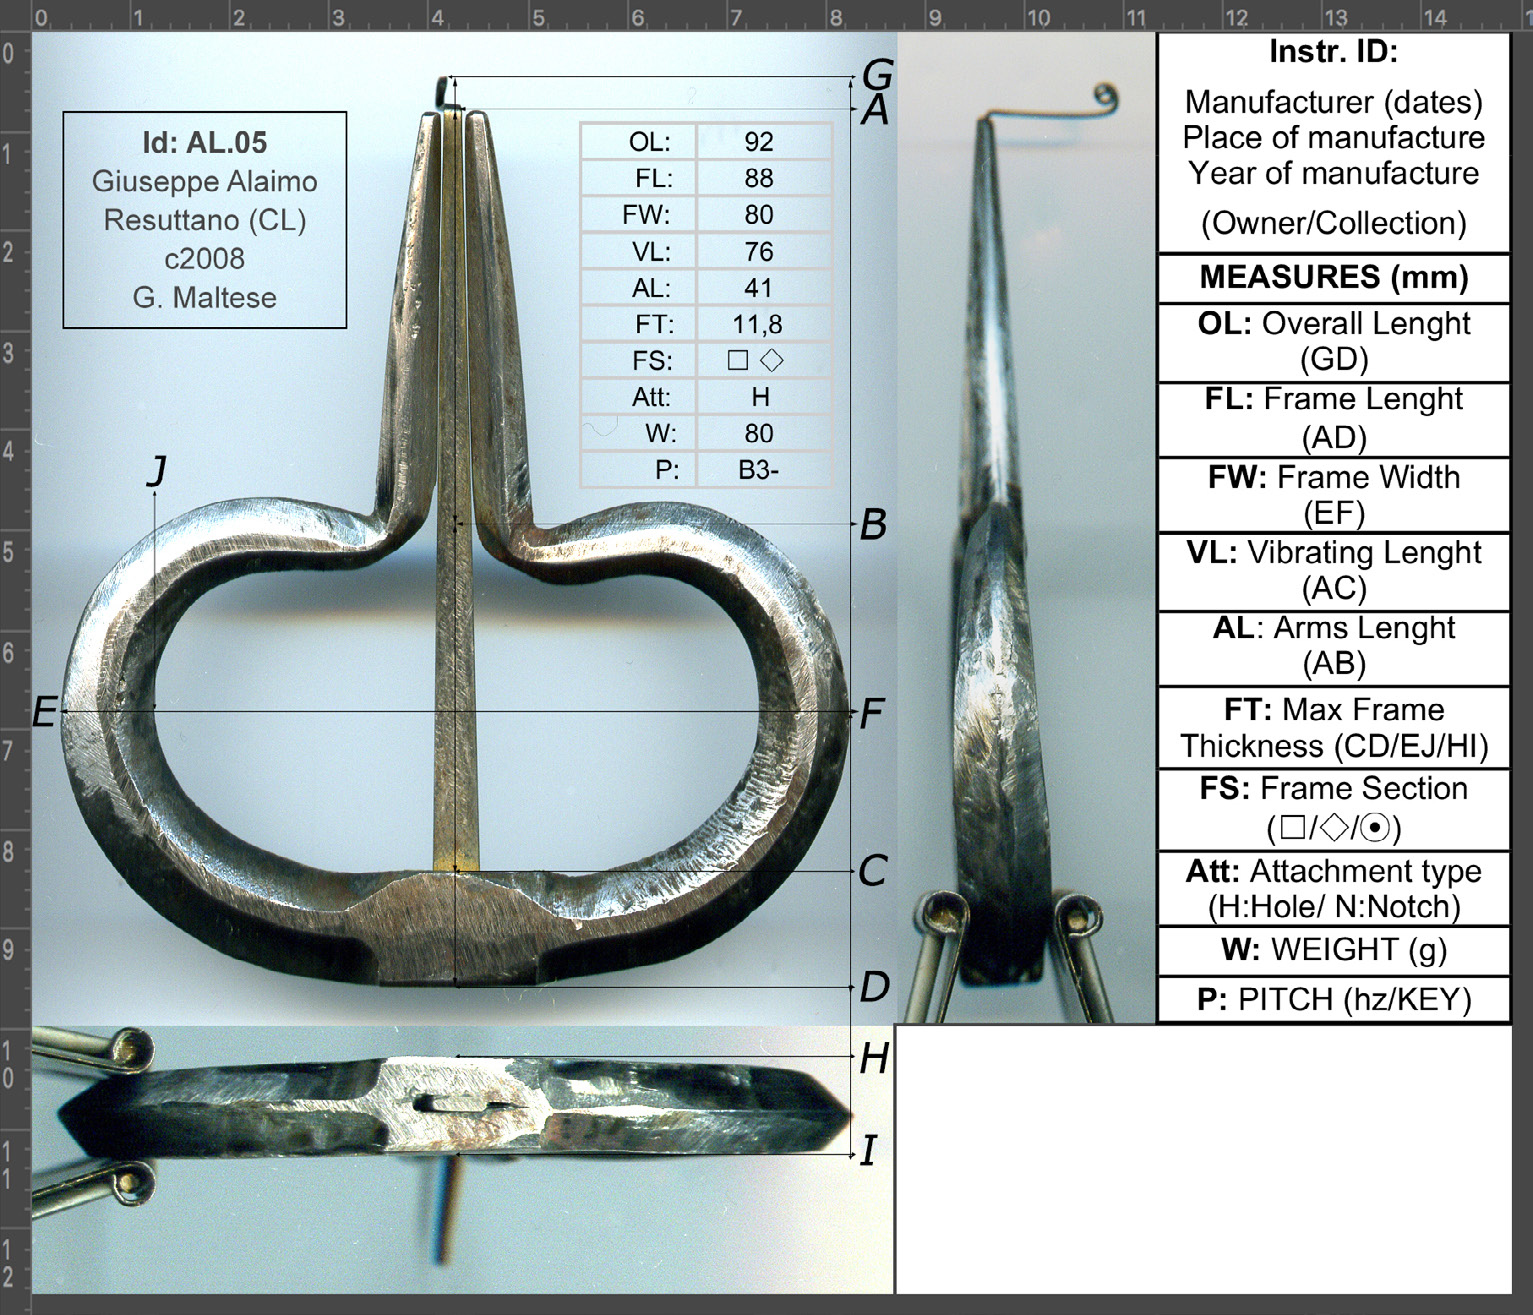 FIGURE-9.-Jews-harp-made-by-G.-Alaimo,-ca.-2008-(Coll.-Giorgio-Maltese).-With-scheme-of-standard-measurements-and-abbreviations-used-in-the-article-(side-rulers-in-ce